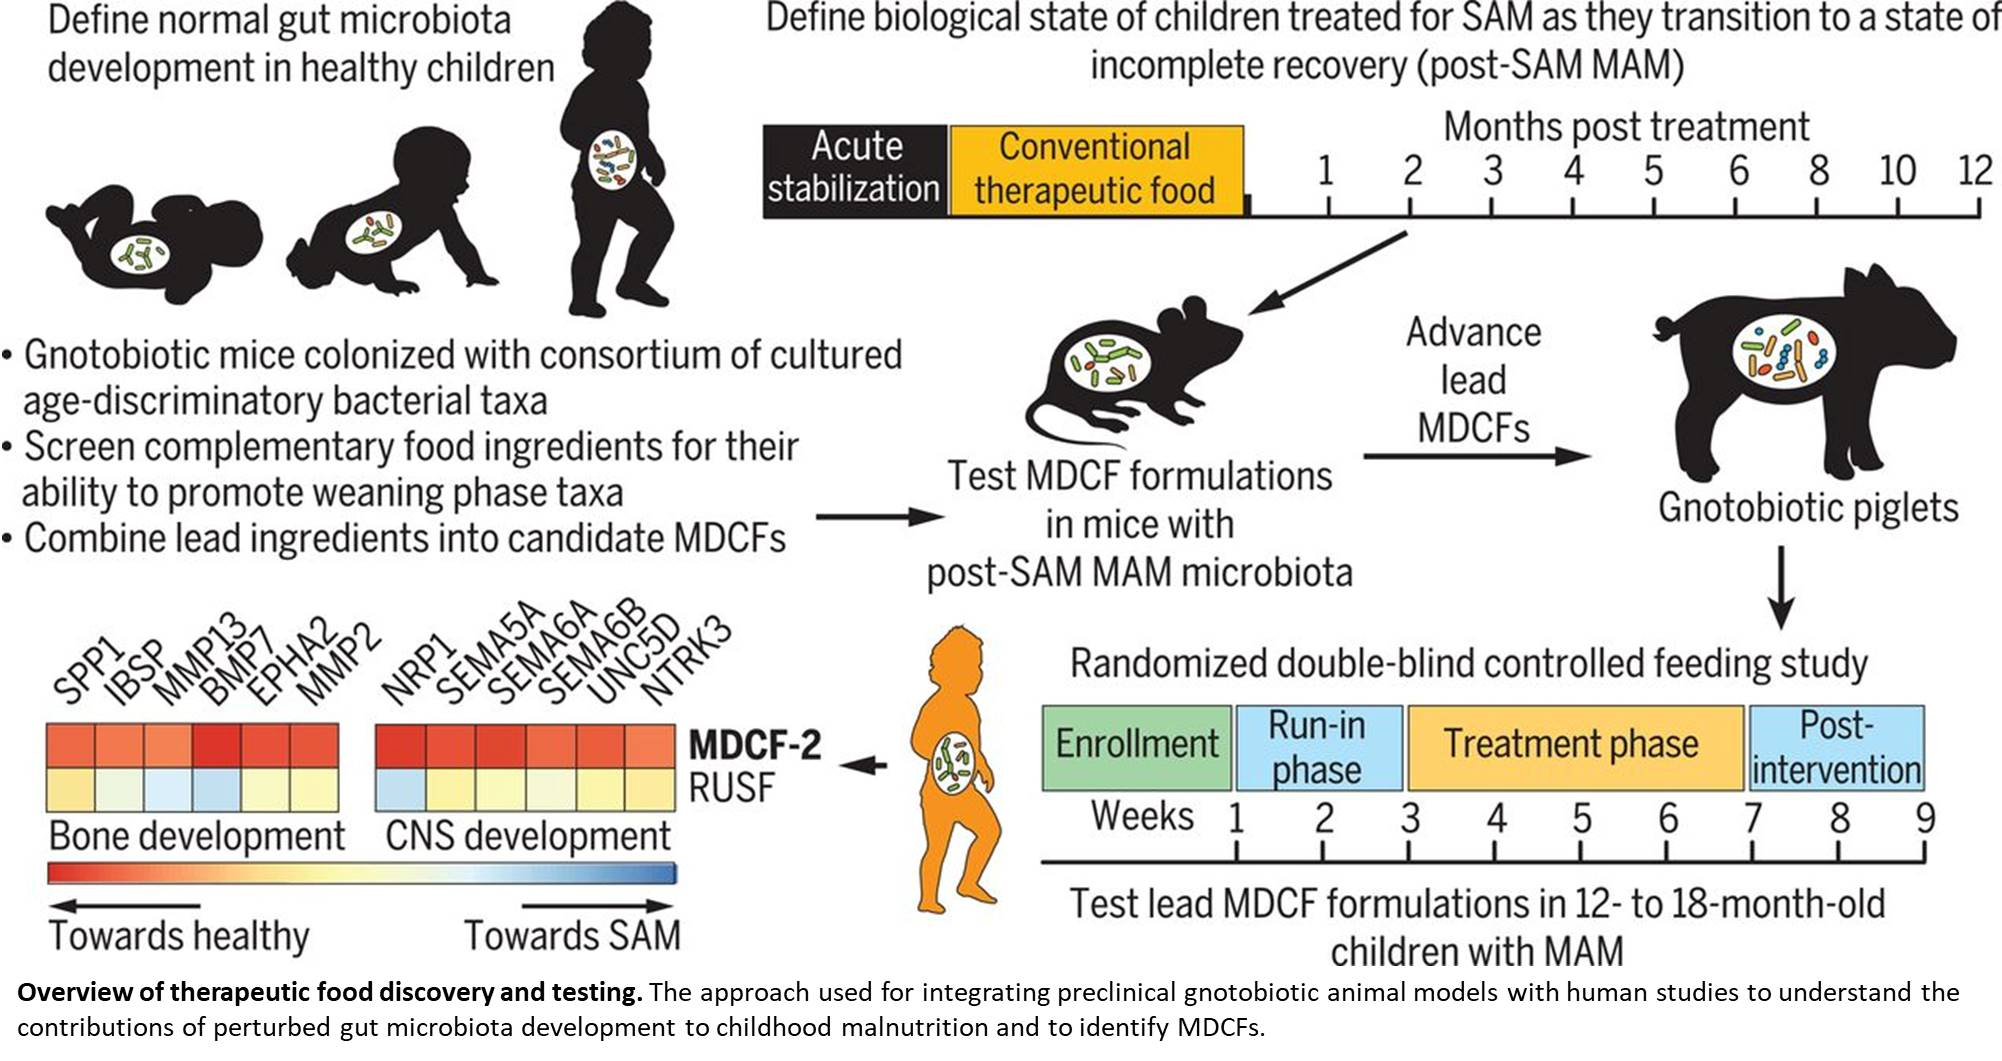 Targeting gut microbes to treat undernourished children